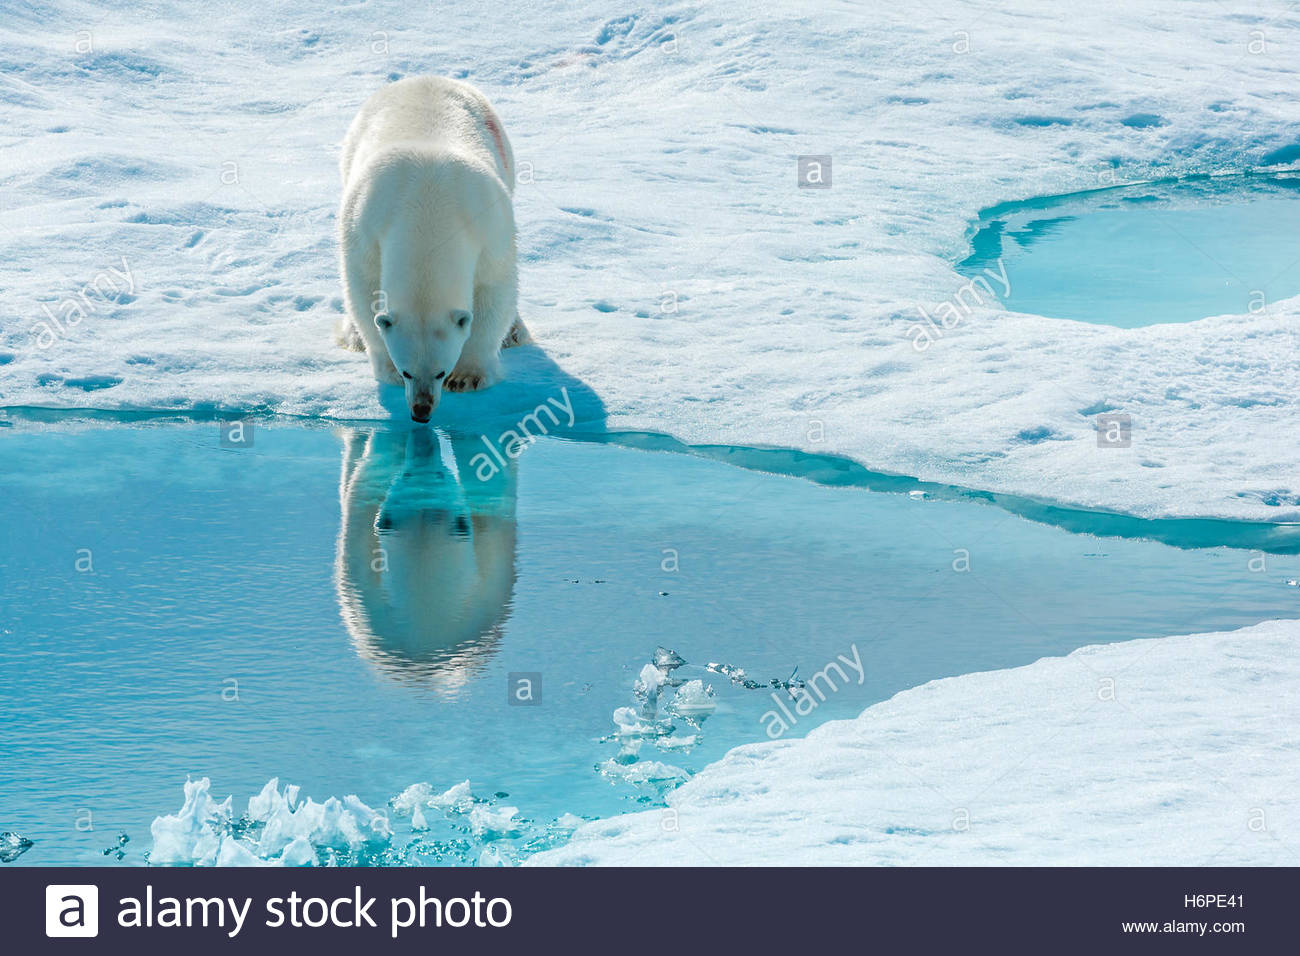 A polar bear (Ursus maritimus) stops to look at its reflection in the arctic sea water. - Stock Image